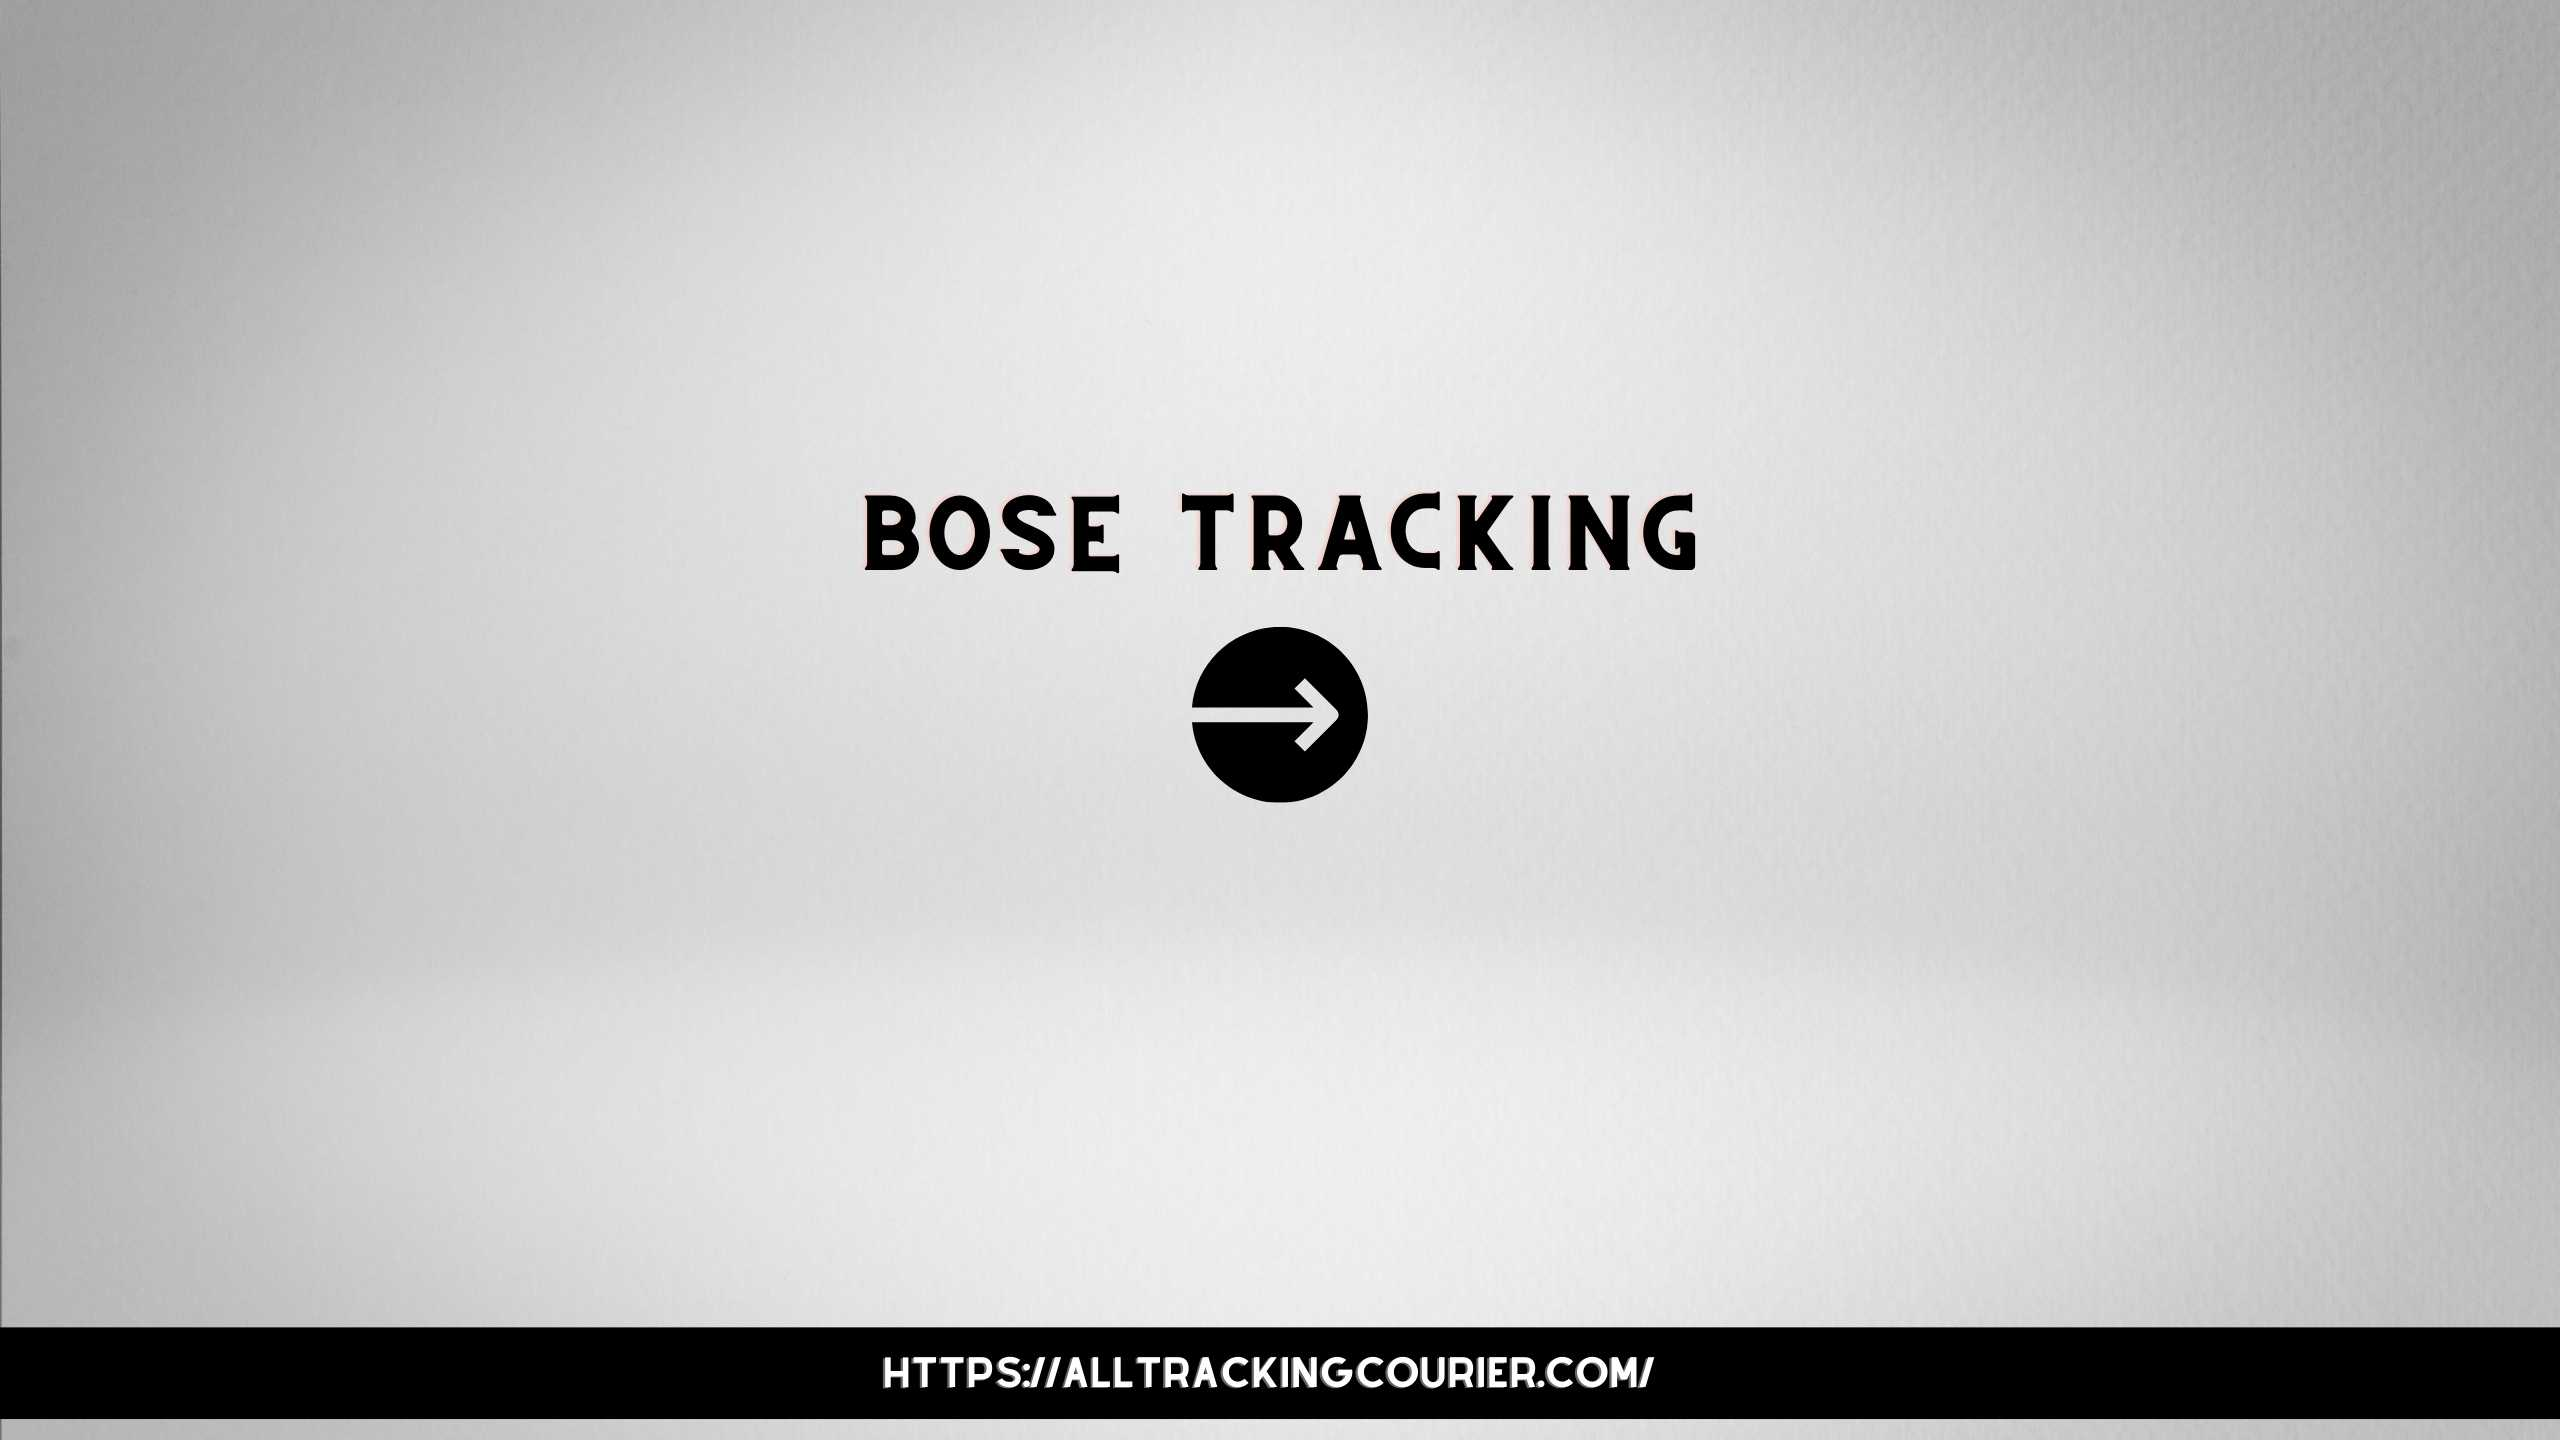 Bose Tracking - Track Your Parcel - Alltrackingcourier